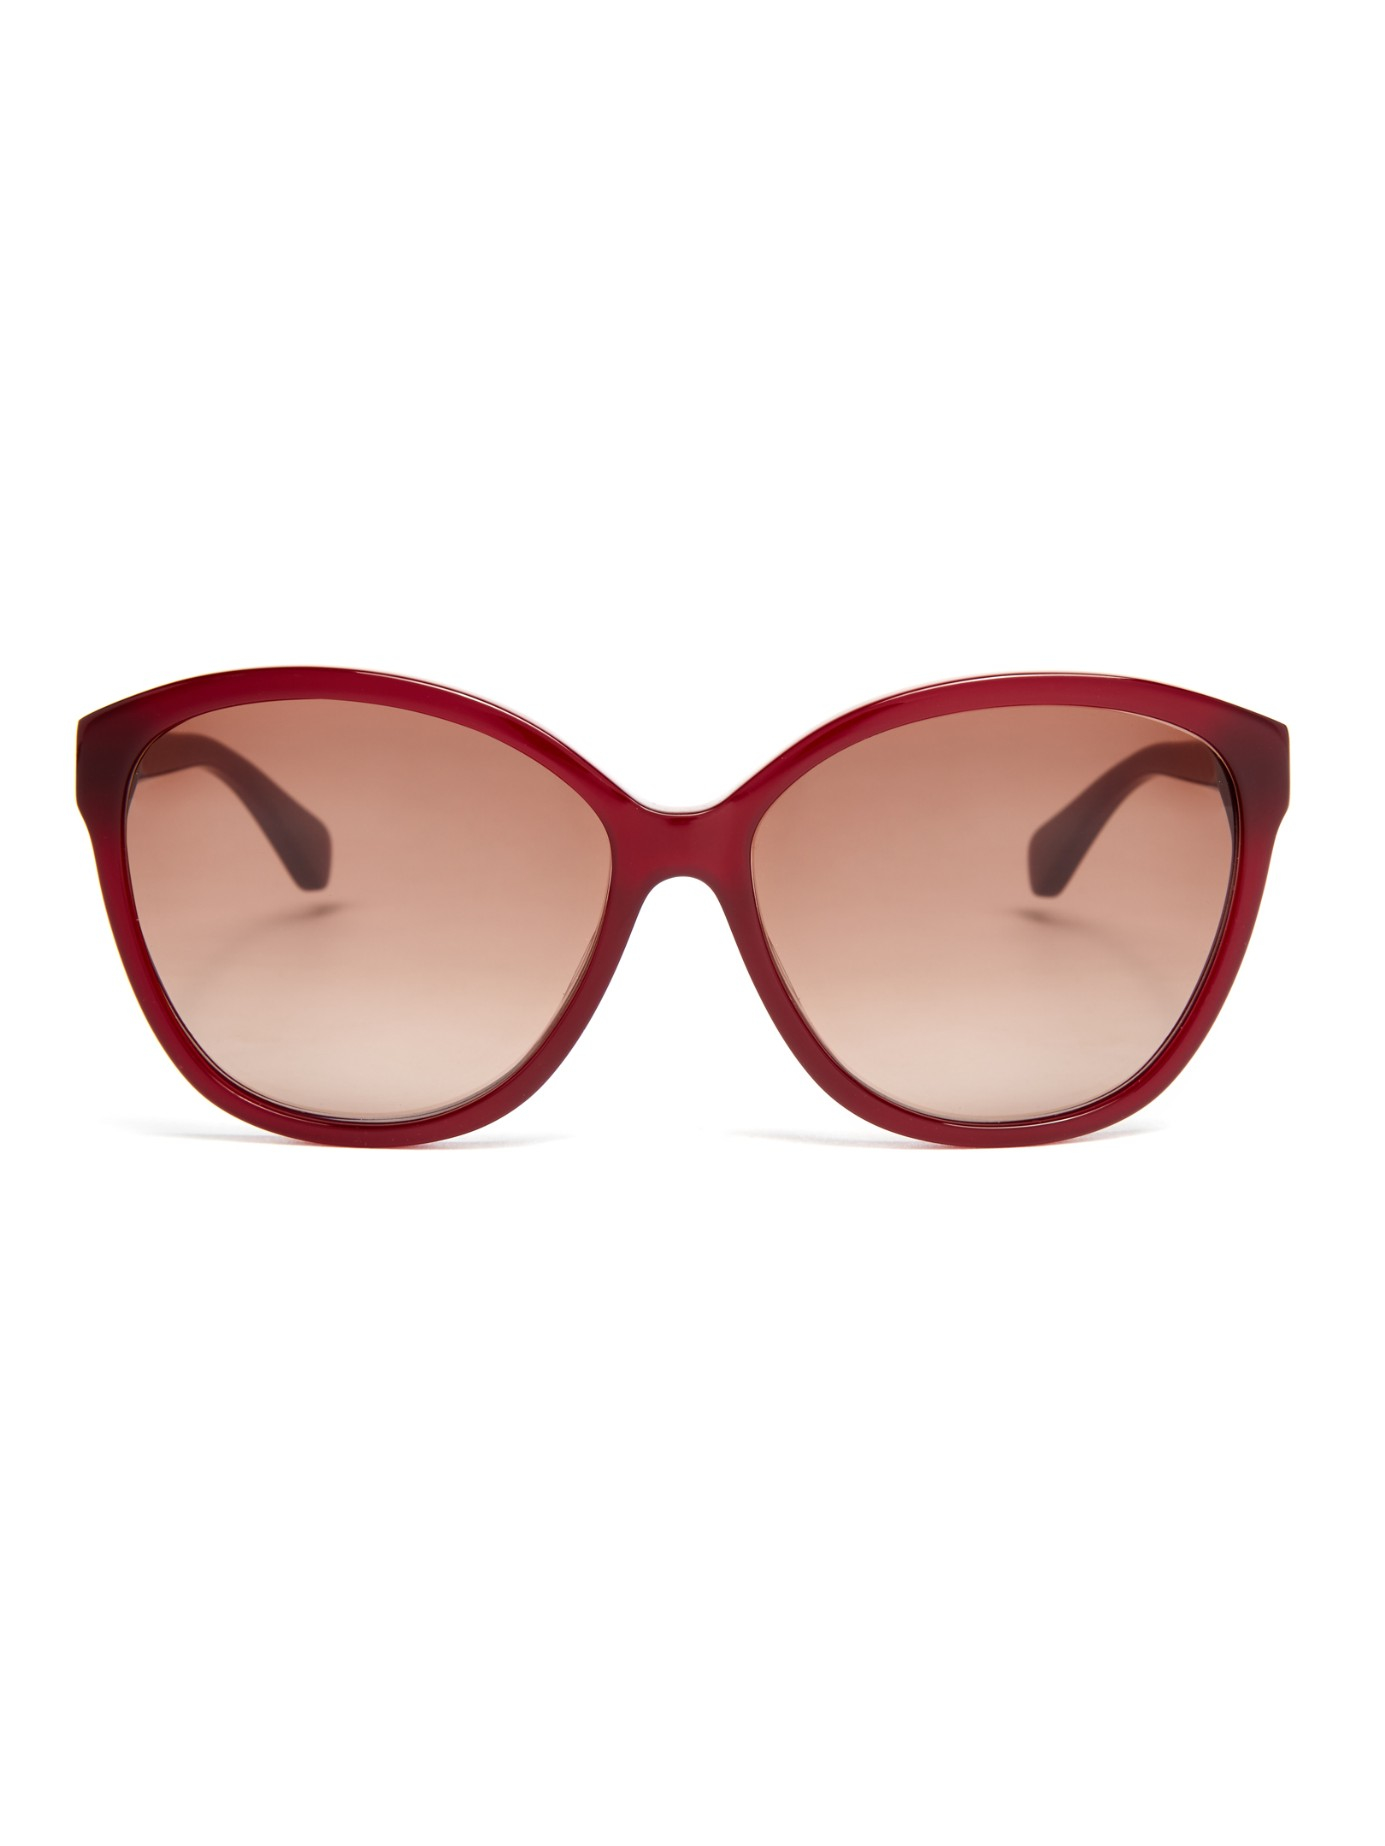 Diane von furstenberg Harper Sunglasses in Red